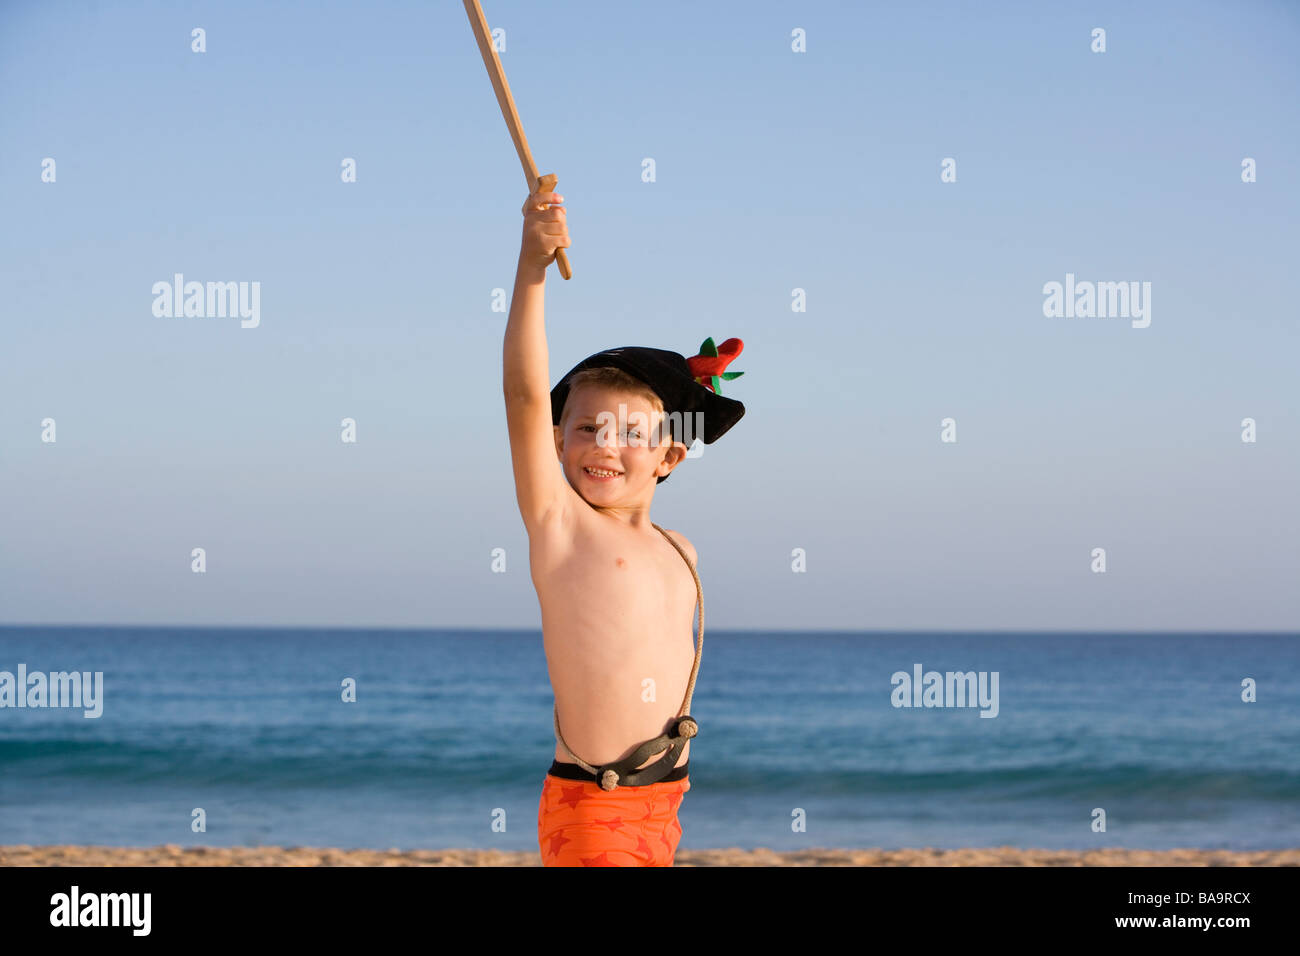 A playing child on the beach. Stock Photo